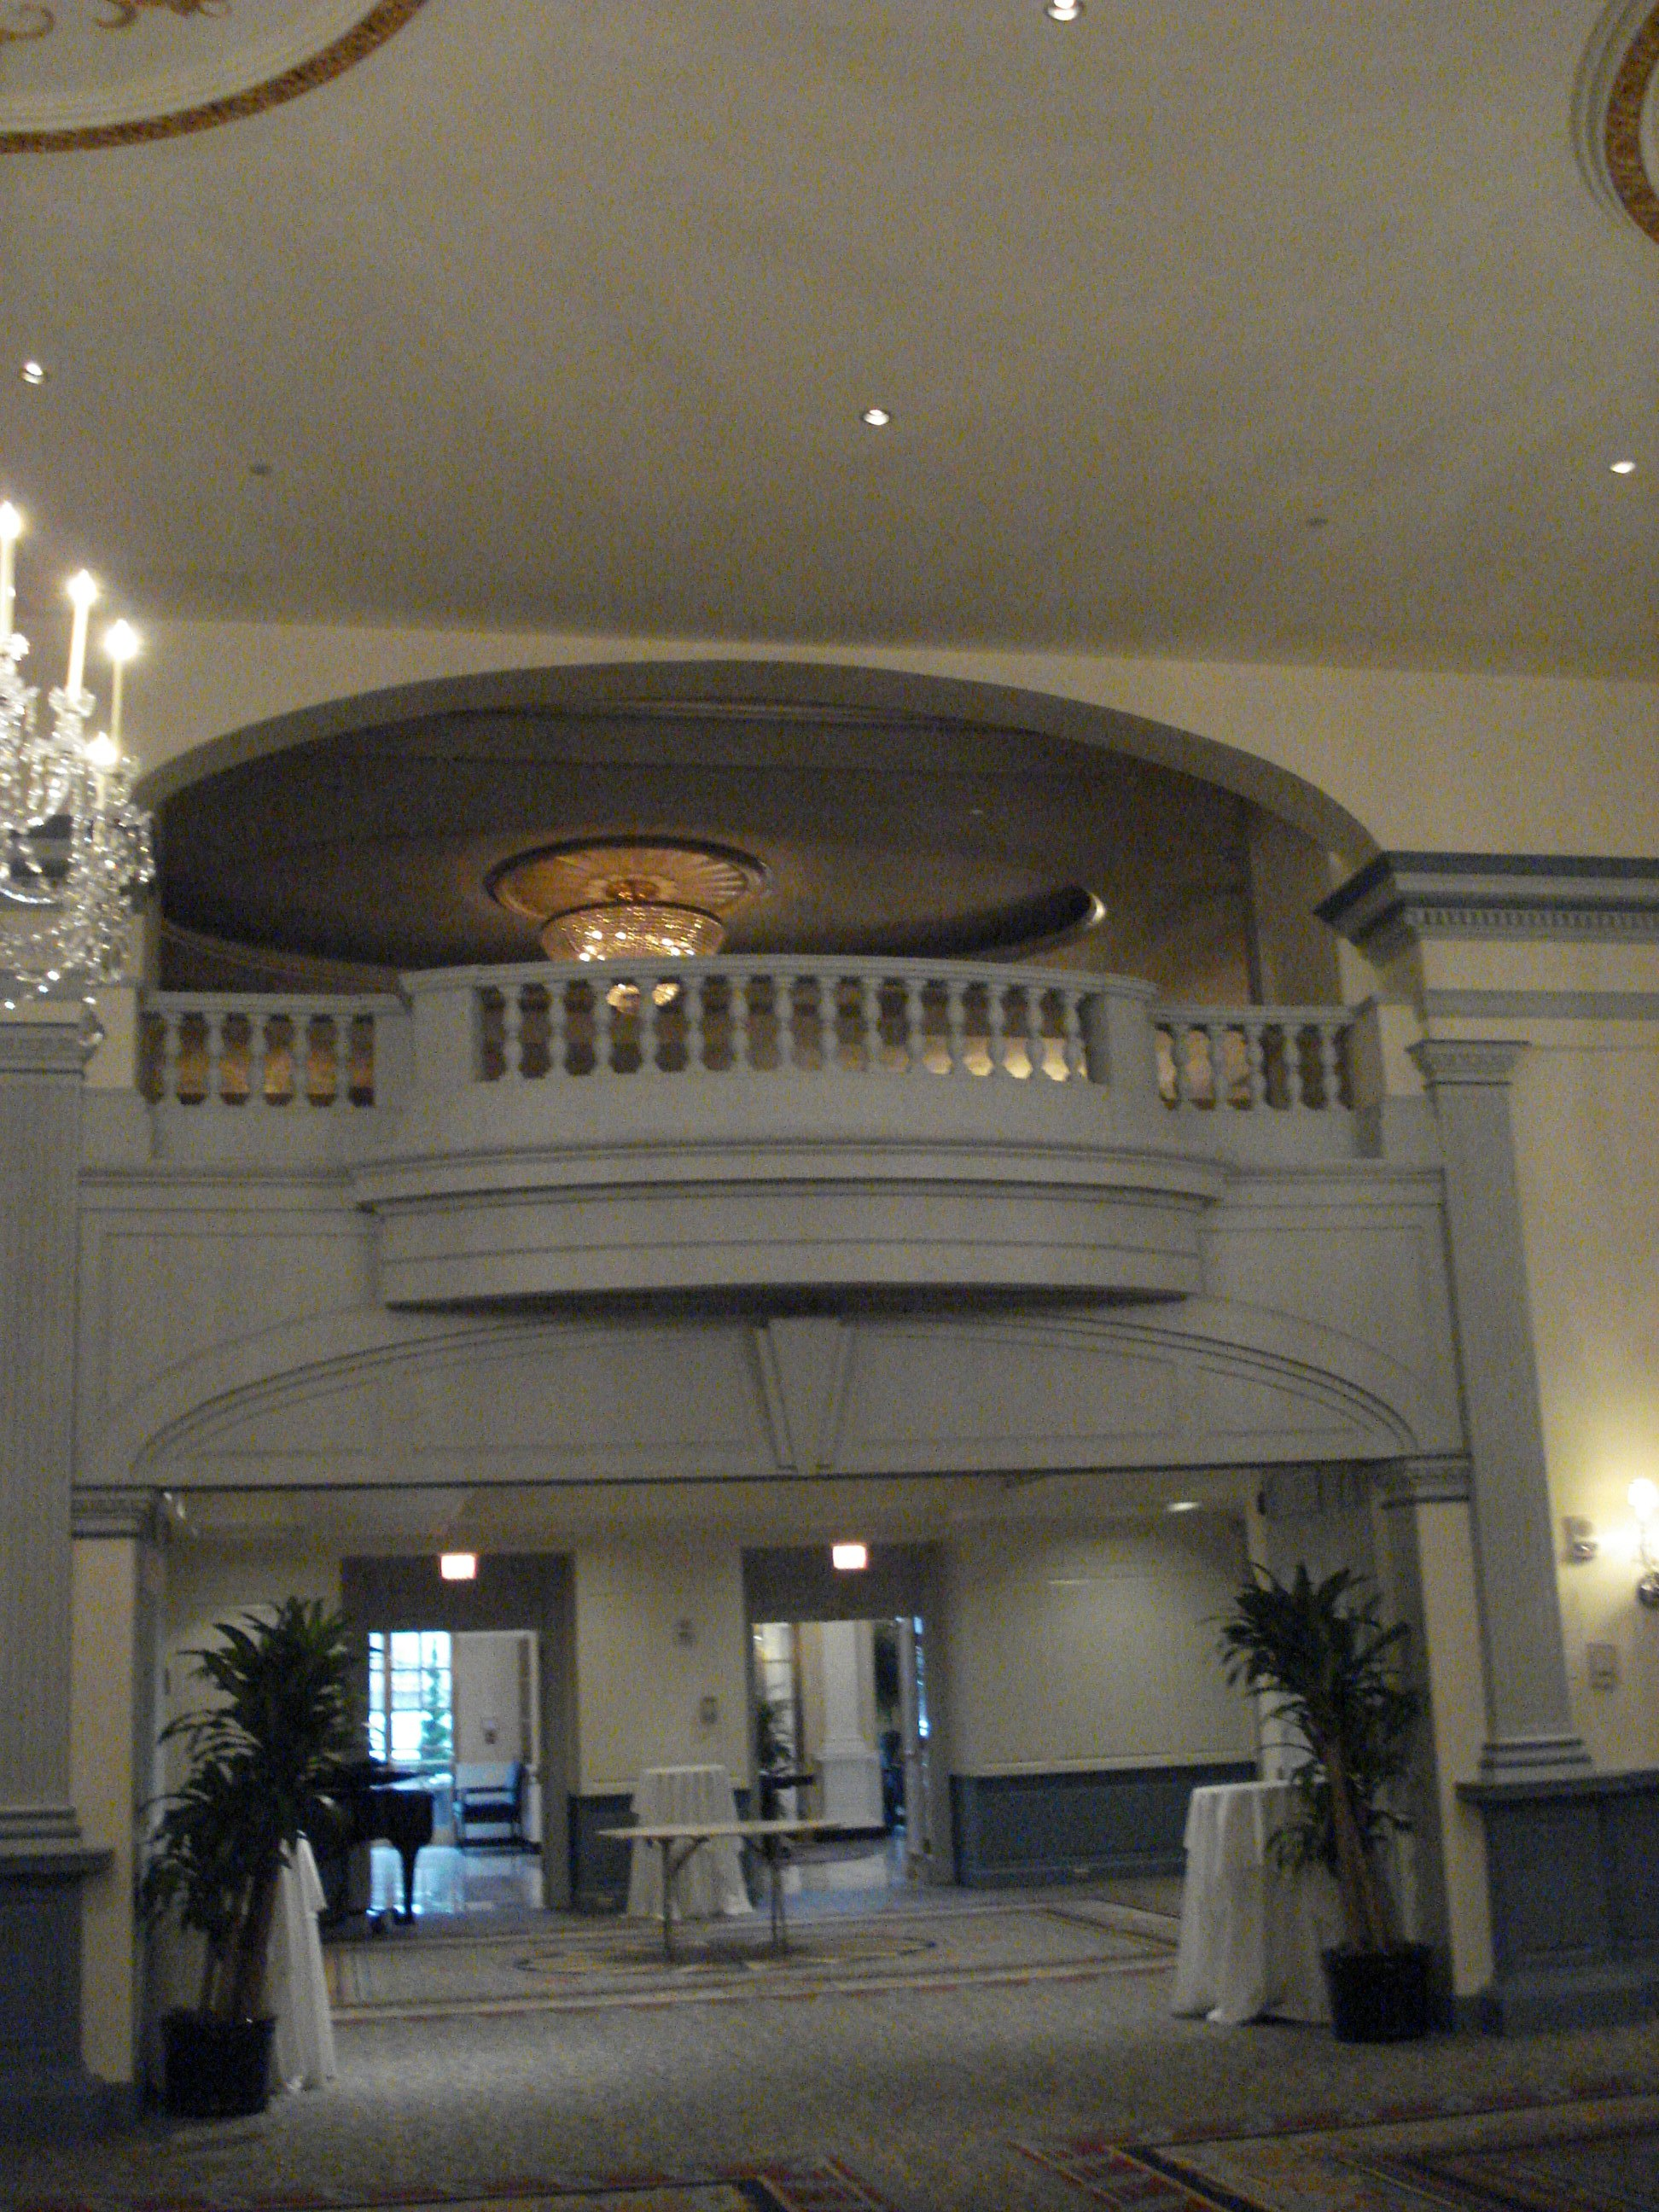 Looking the other direction into the Salon and upper balcony